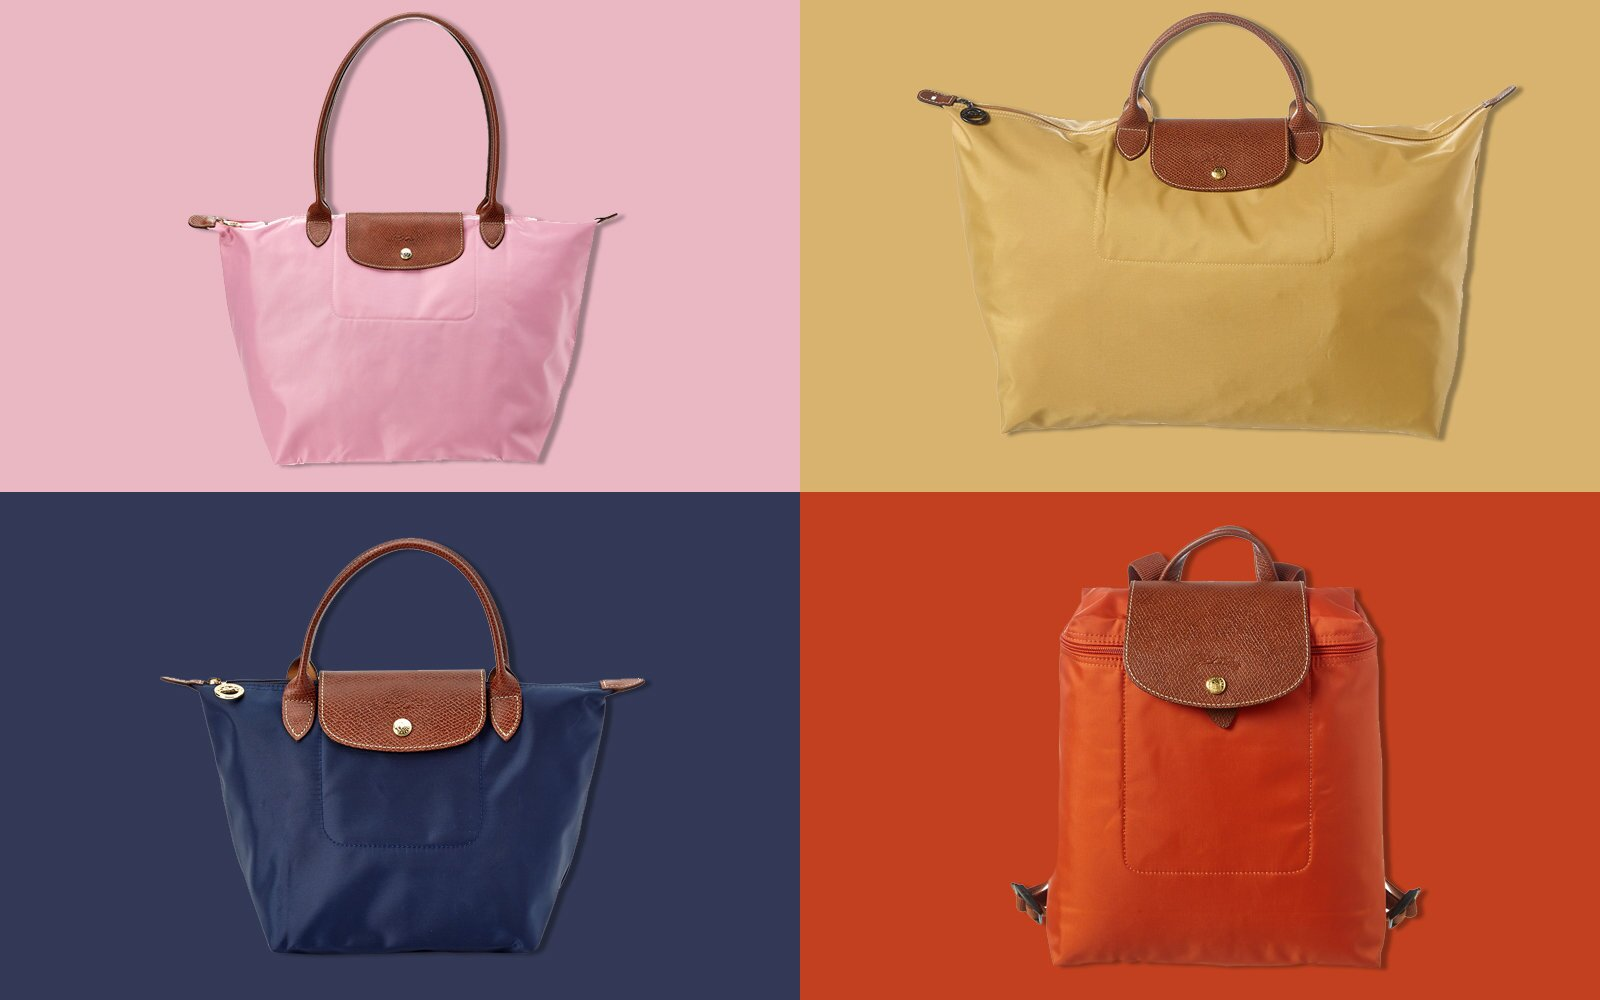 79e865b1bf Longchamp's Best Travel Bags Are up to 70% Off on This Secret Sale ...